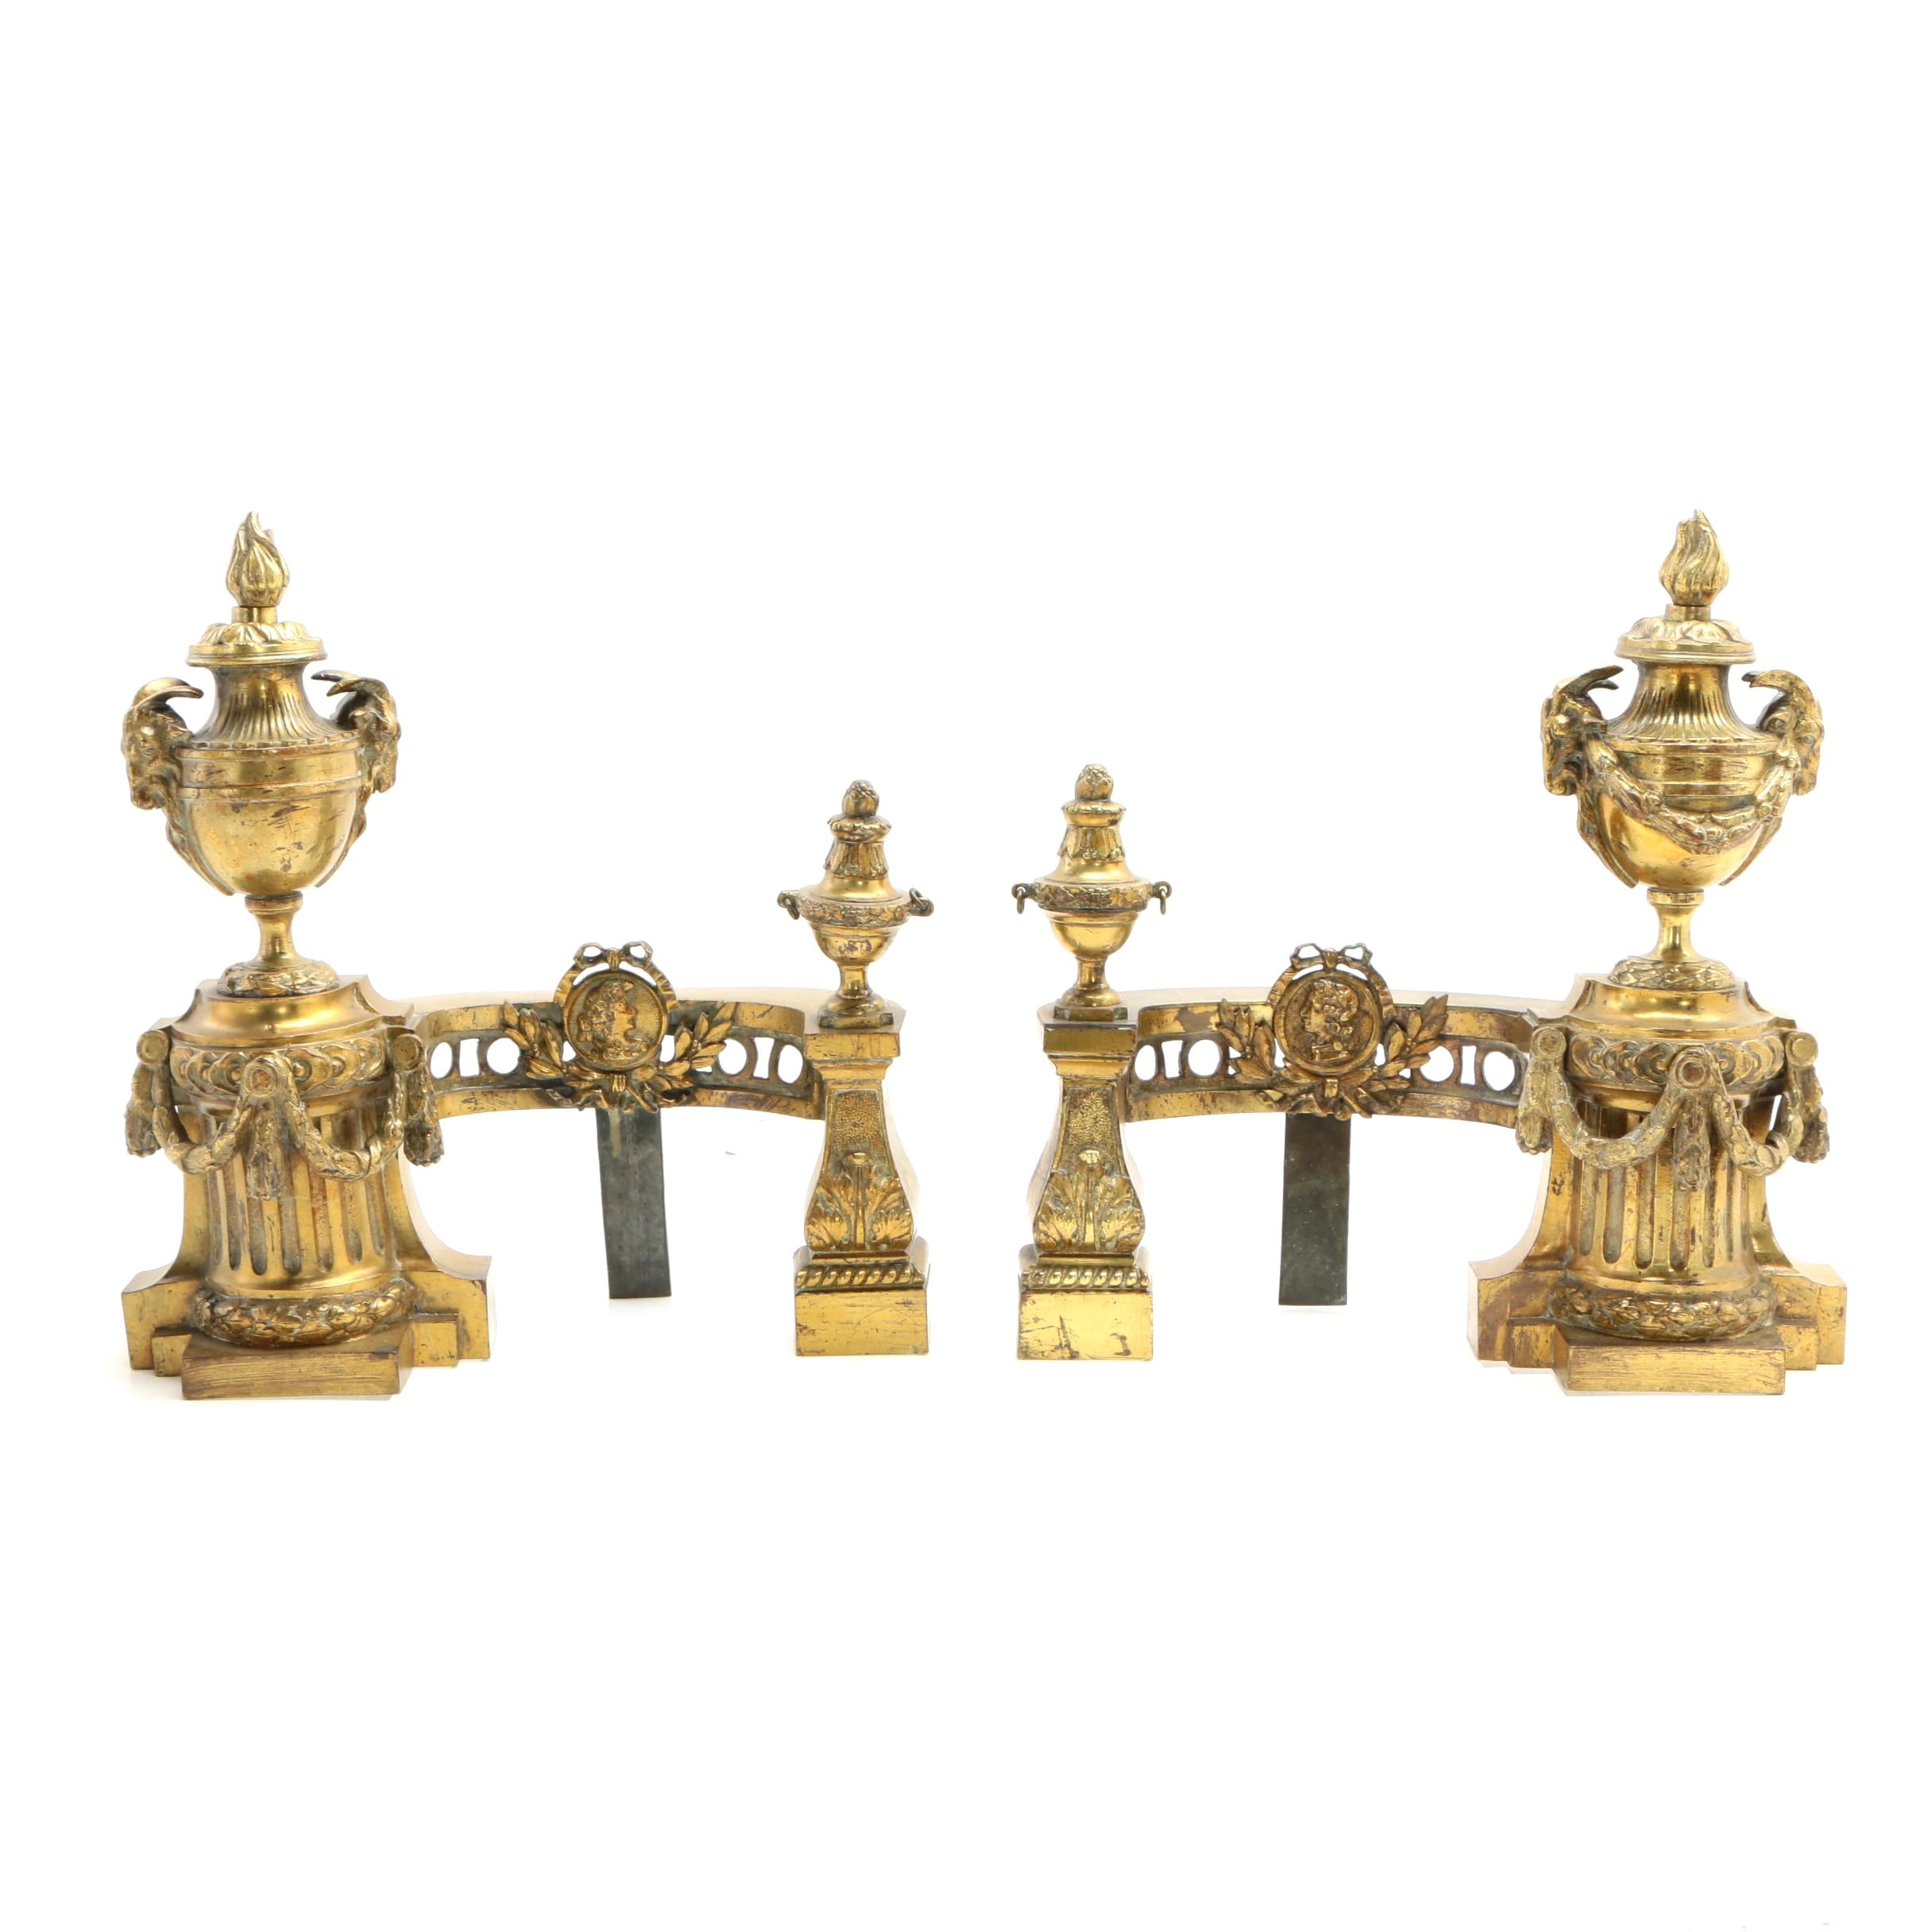 Neoclassical Style Gilt Metal Chenets, Late 19th to Early 20th Century